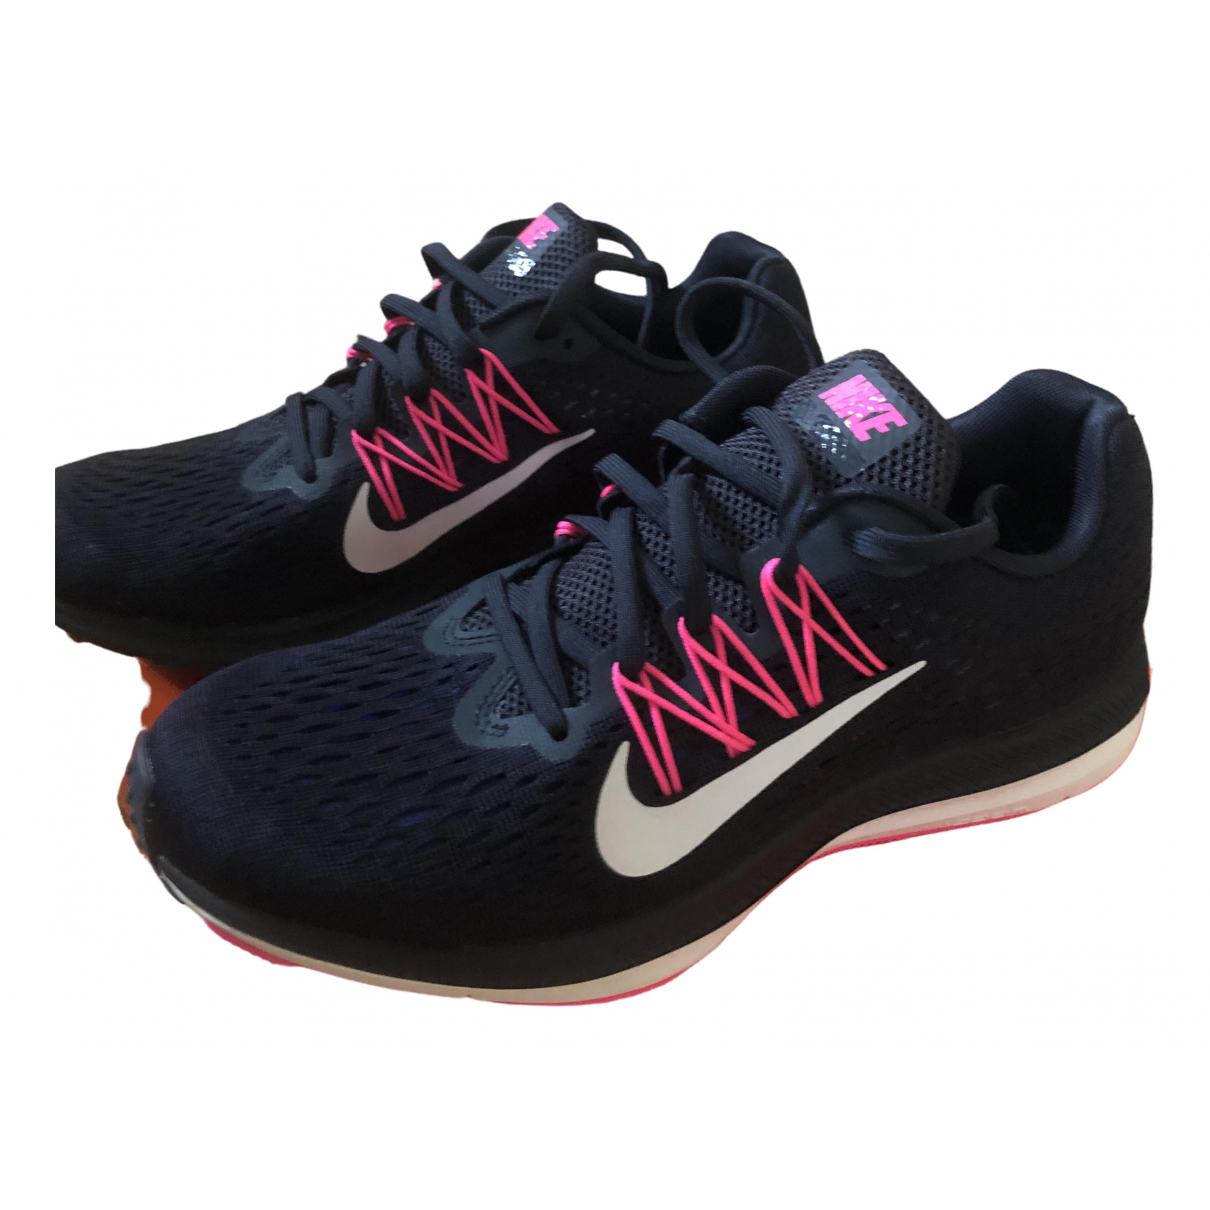 Nike Air Zoom Pegasus Blue Trainers for Women 38.5 EU